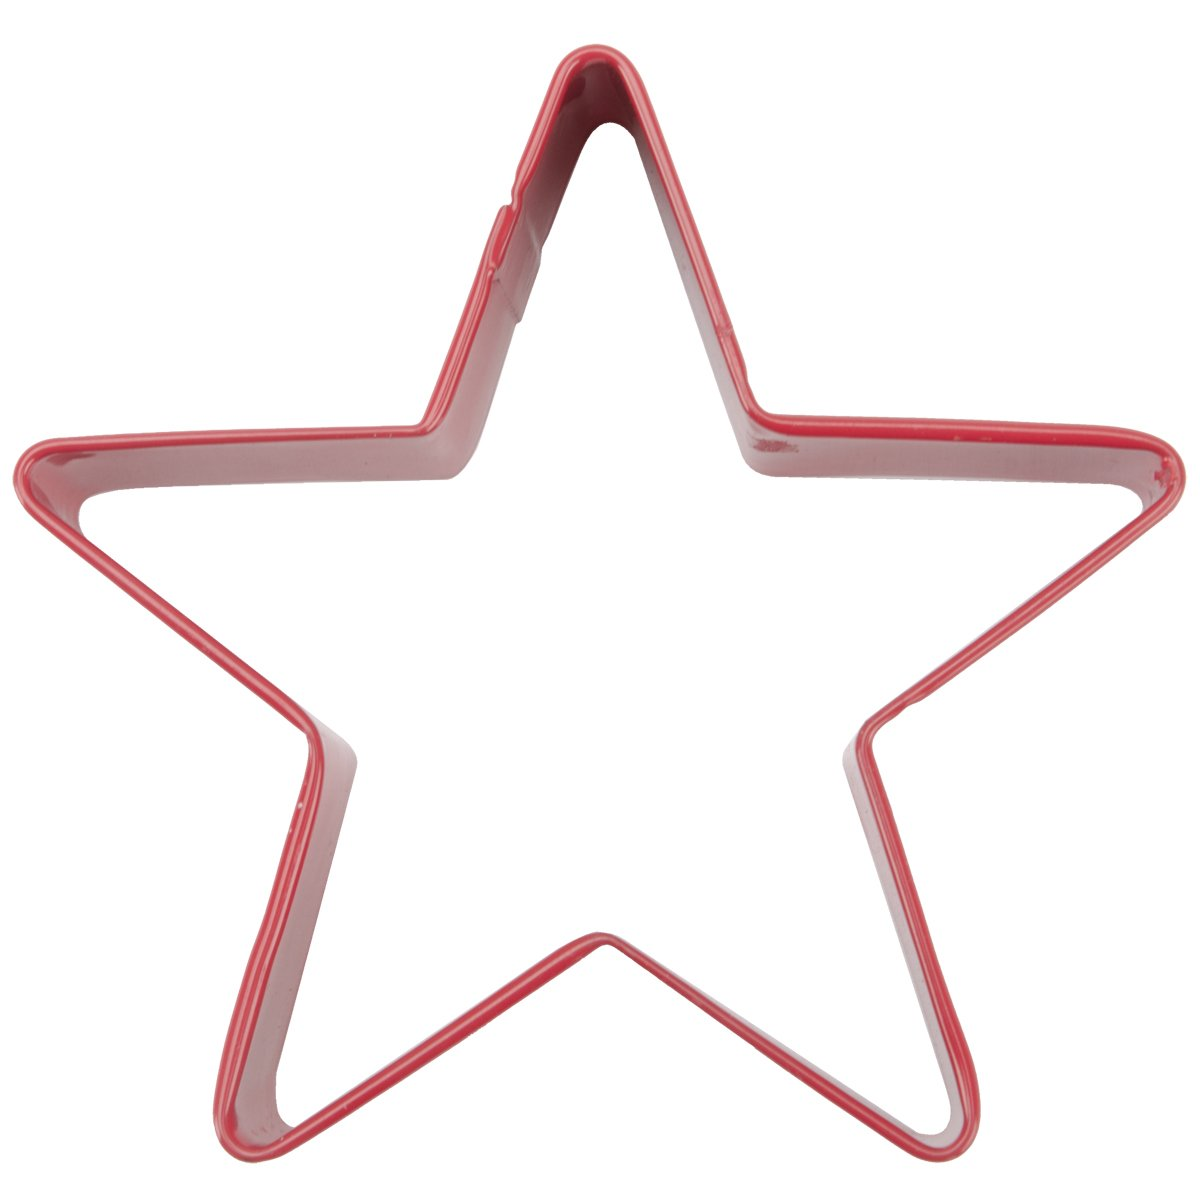 Amazon.com: Wilton Metal Cookie Cutter, 3-Inch, Star: Arts, Crafts ...